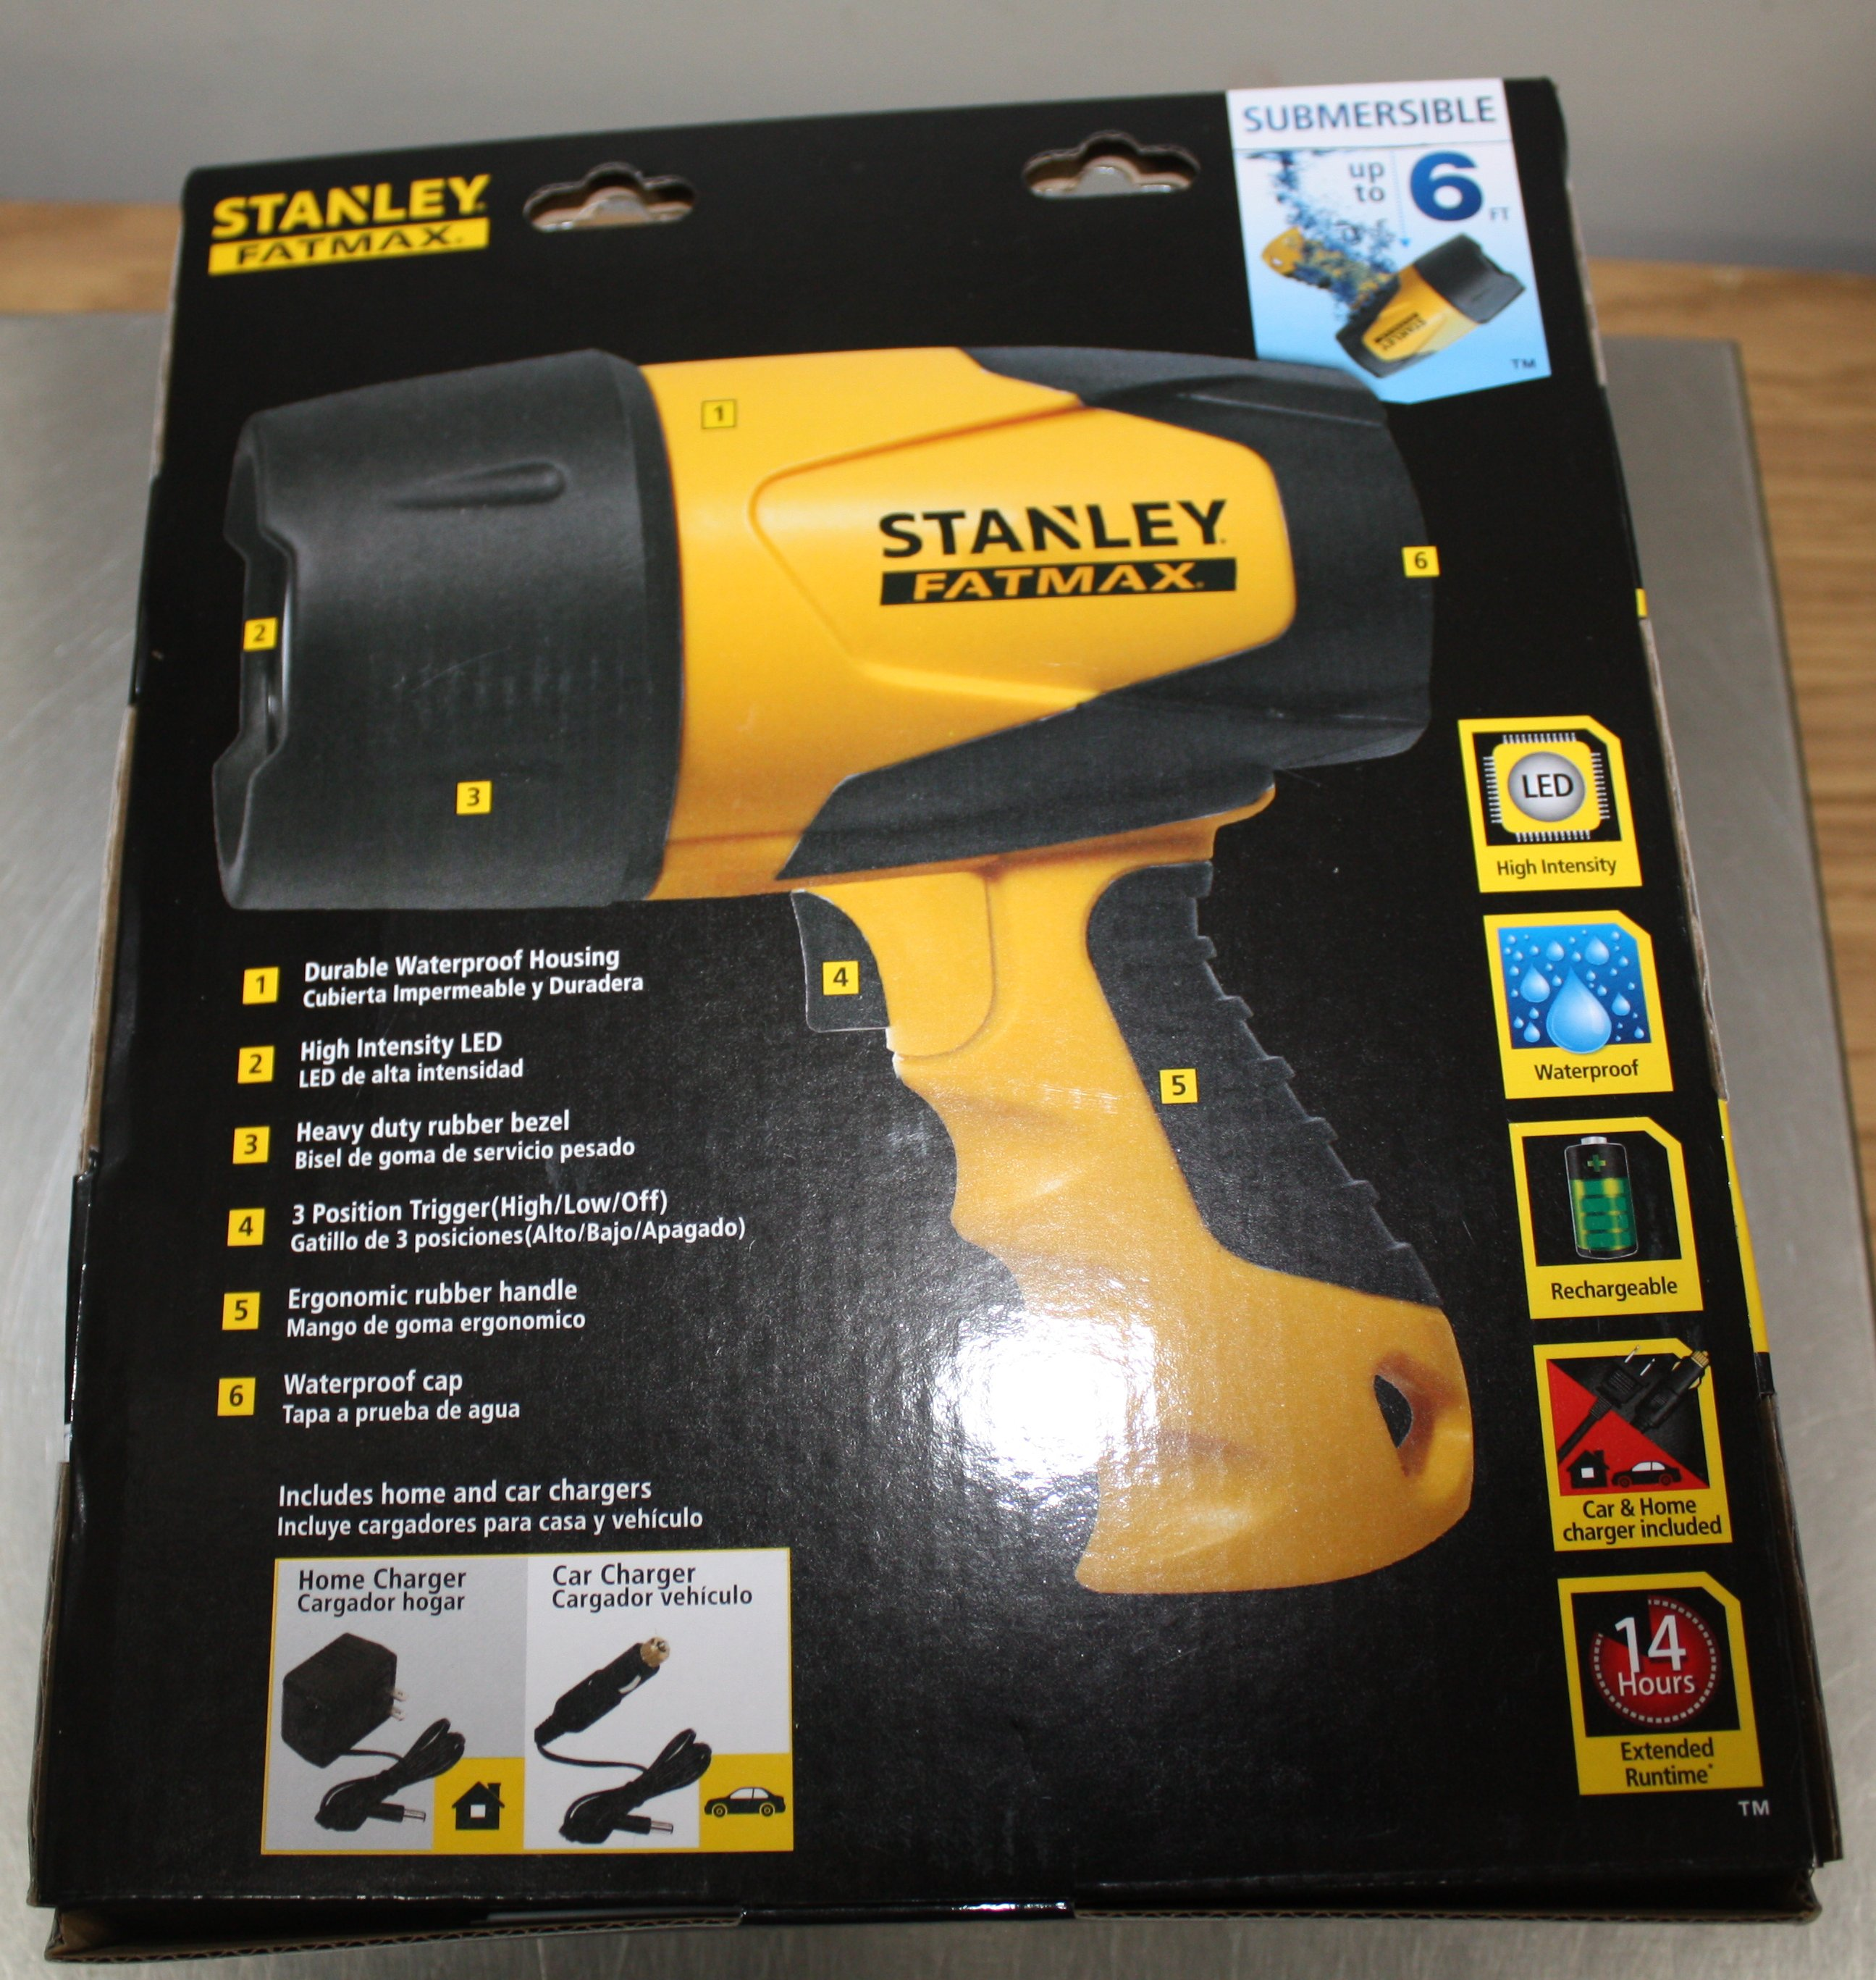 Stanley 5 Watt Led Rechargeable Spotlight: Stanley Dip Drop Dunk It Waterproof LED Rechargeable